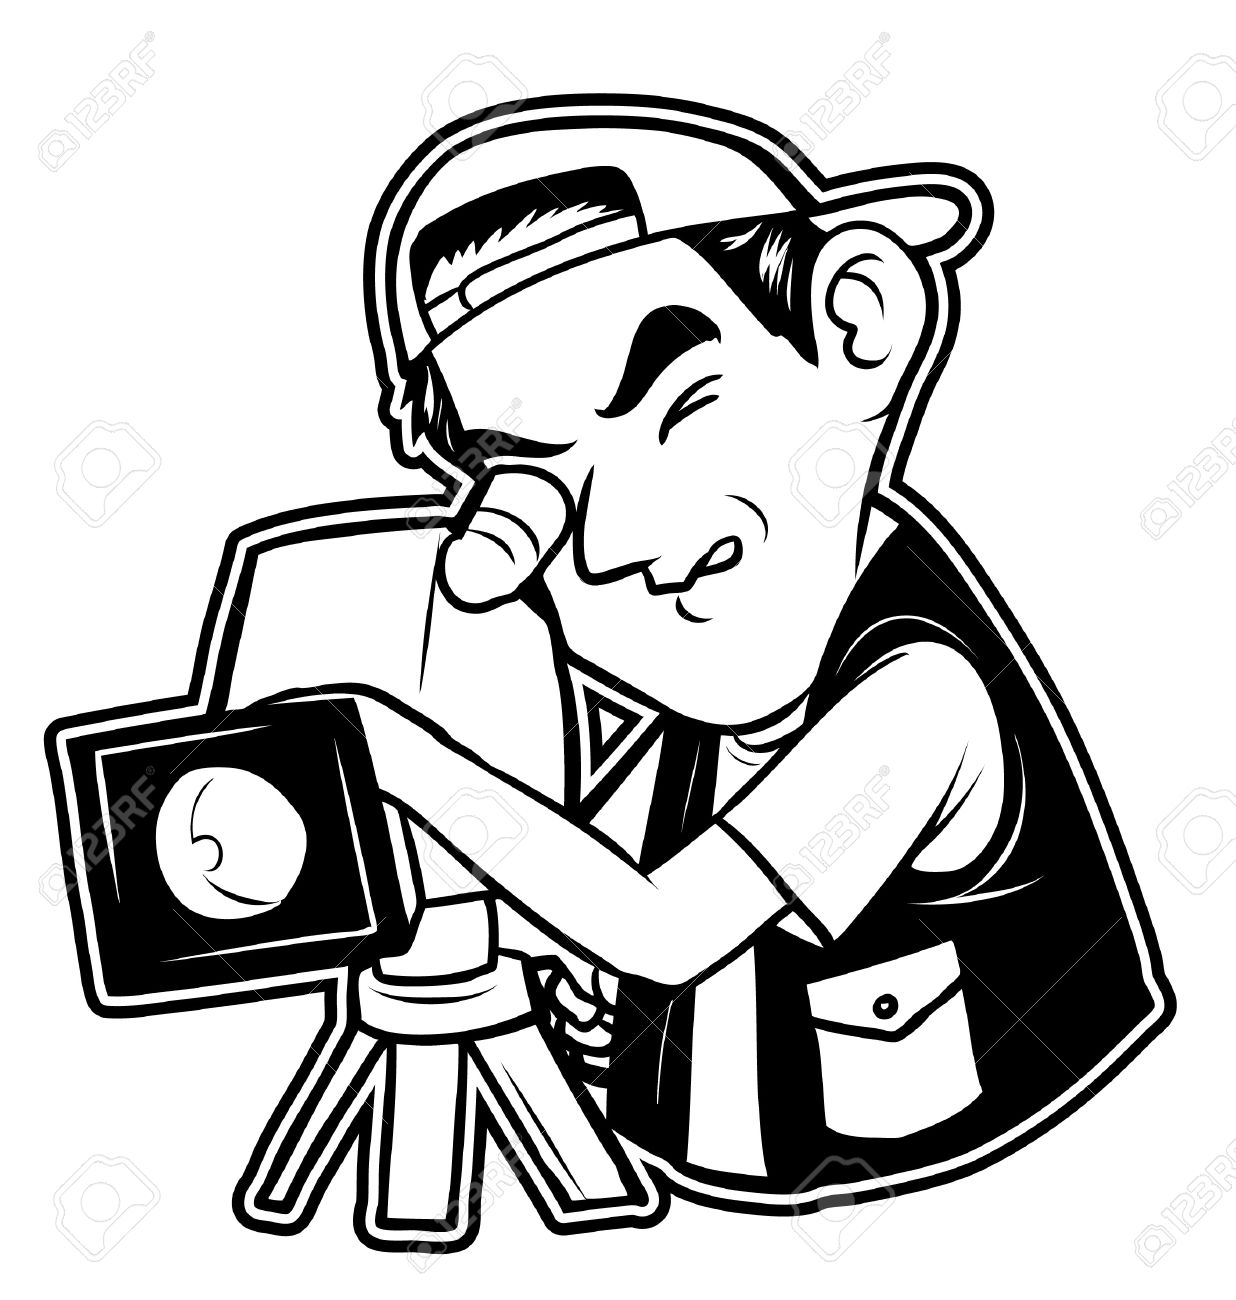 Black And White Clipart Videographer Royalty Free Cliparts.